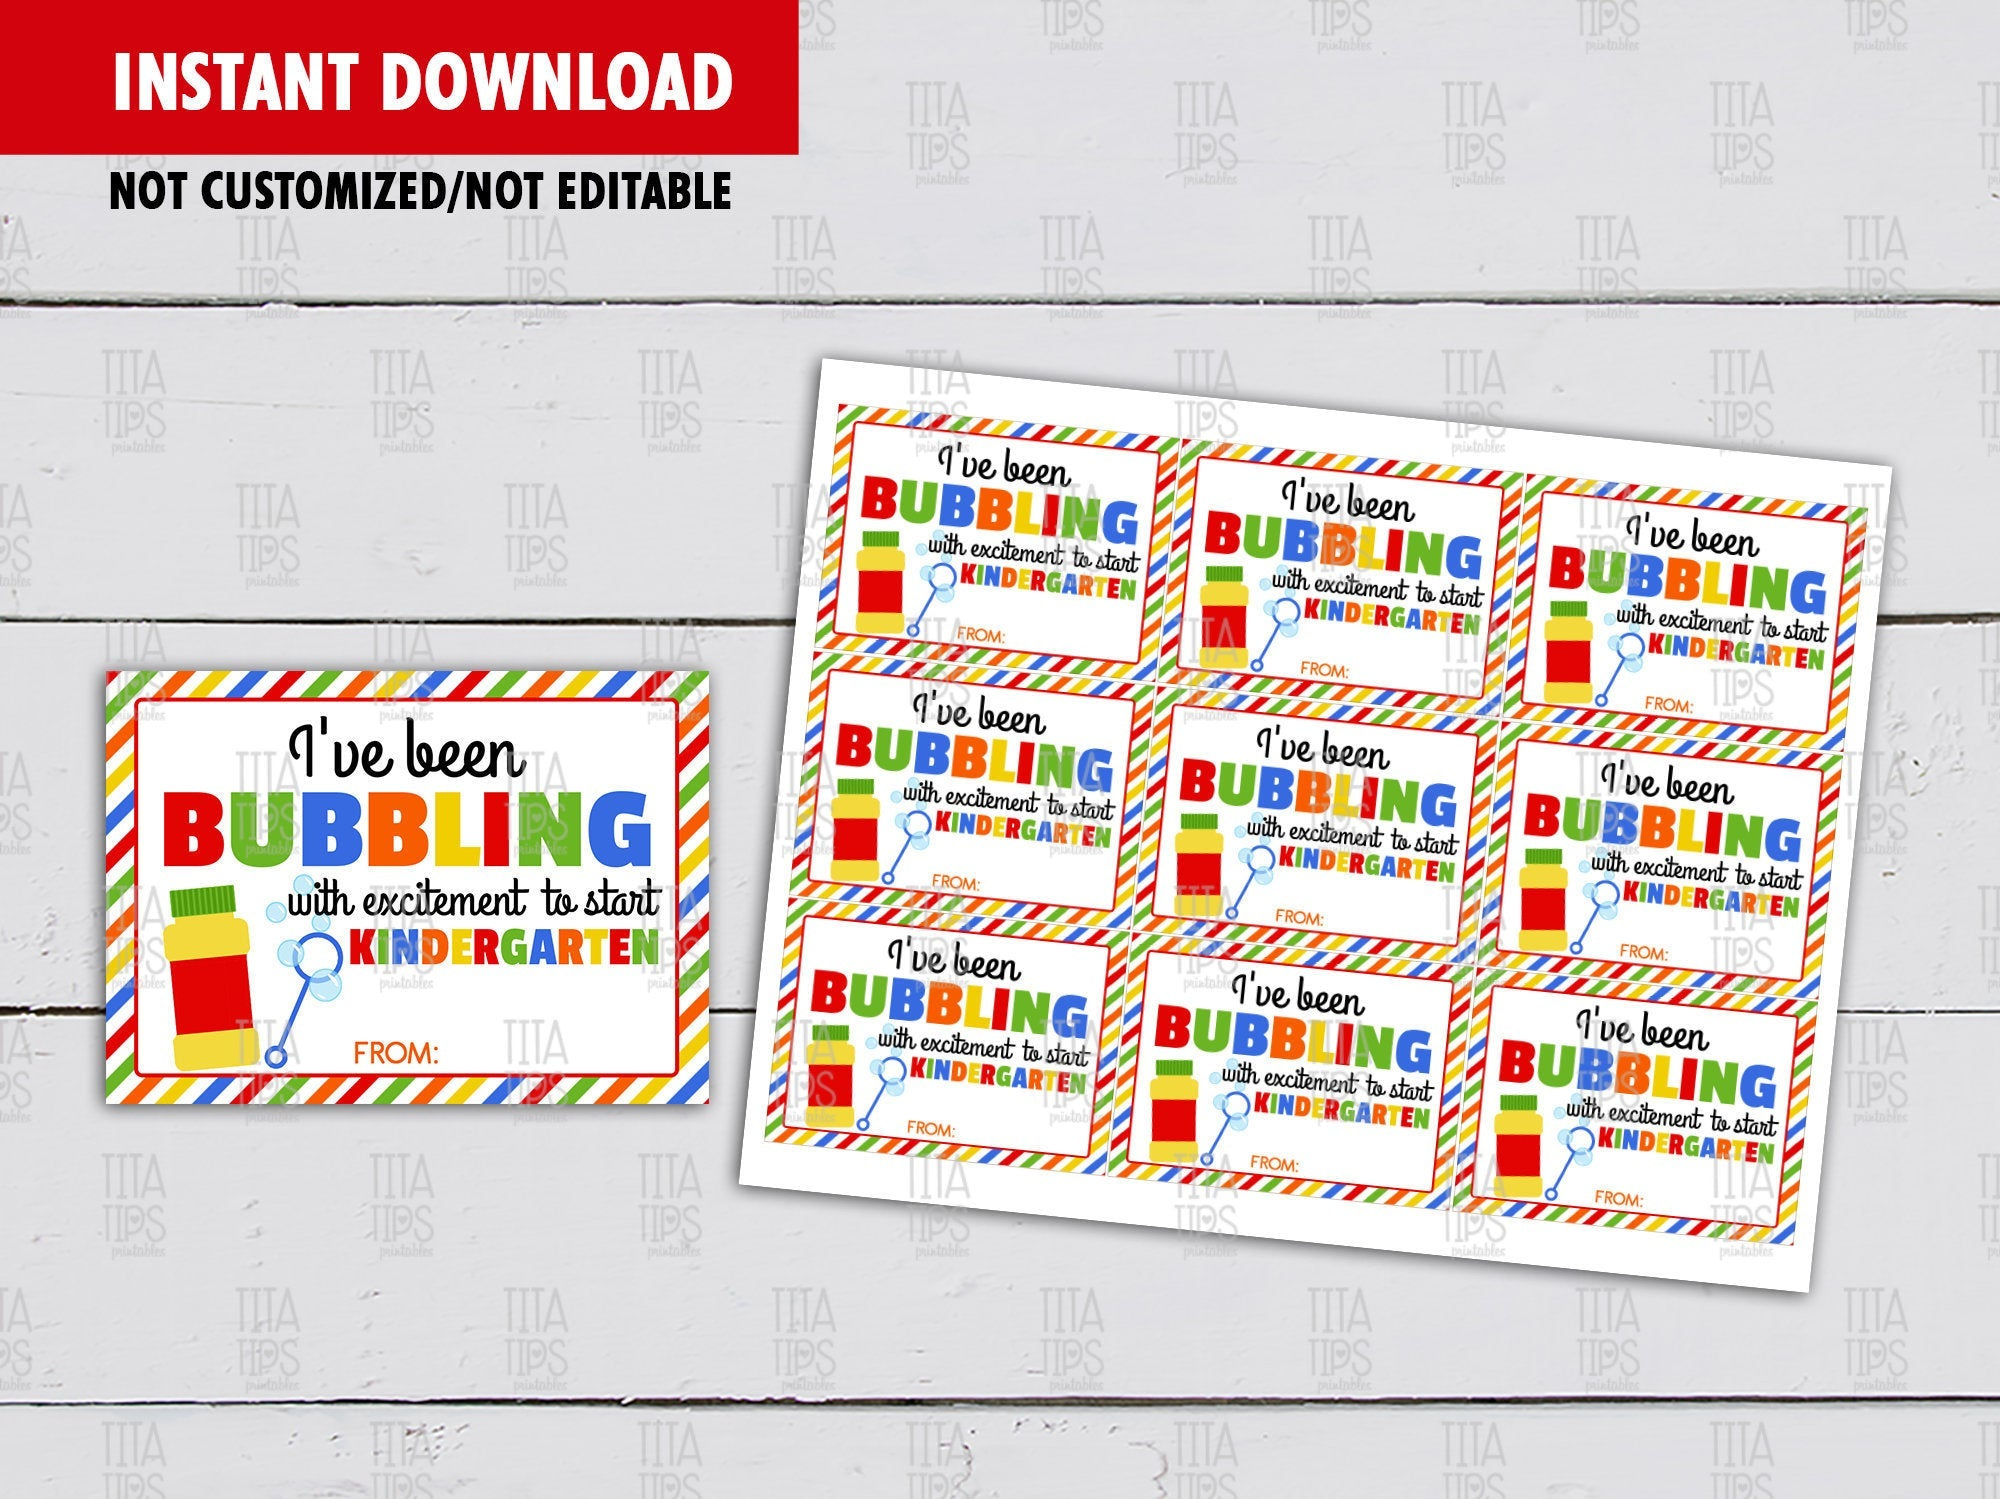 I've been bubbling with excitement to start Kindergarten, Classmates Gifts Ideas, Instant Download - TitaTipsPrintables